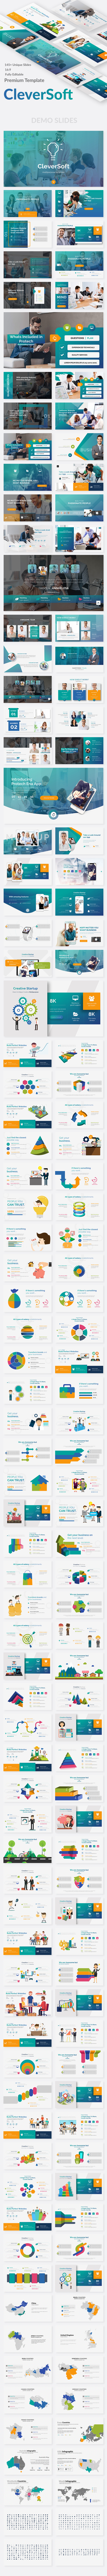 CleverSoft Multipurpose and Business Powerpoint Template - Business PowerPoint Templates